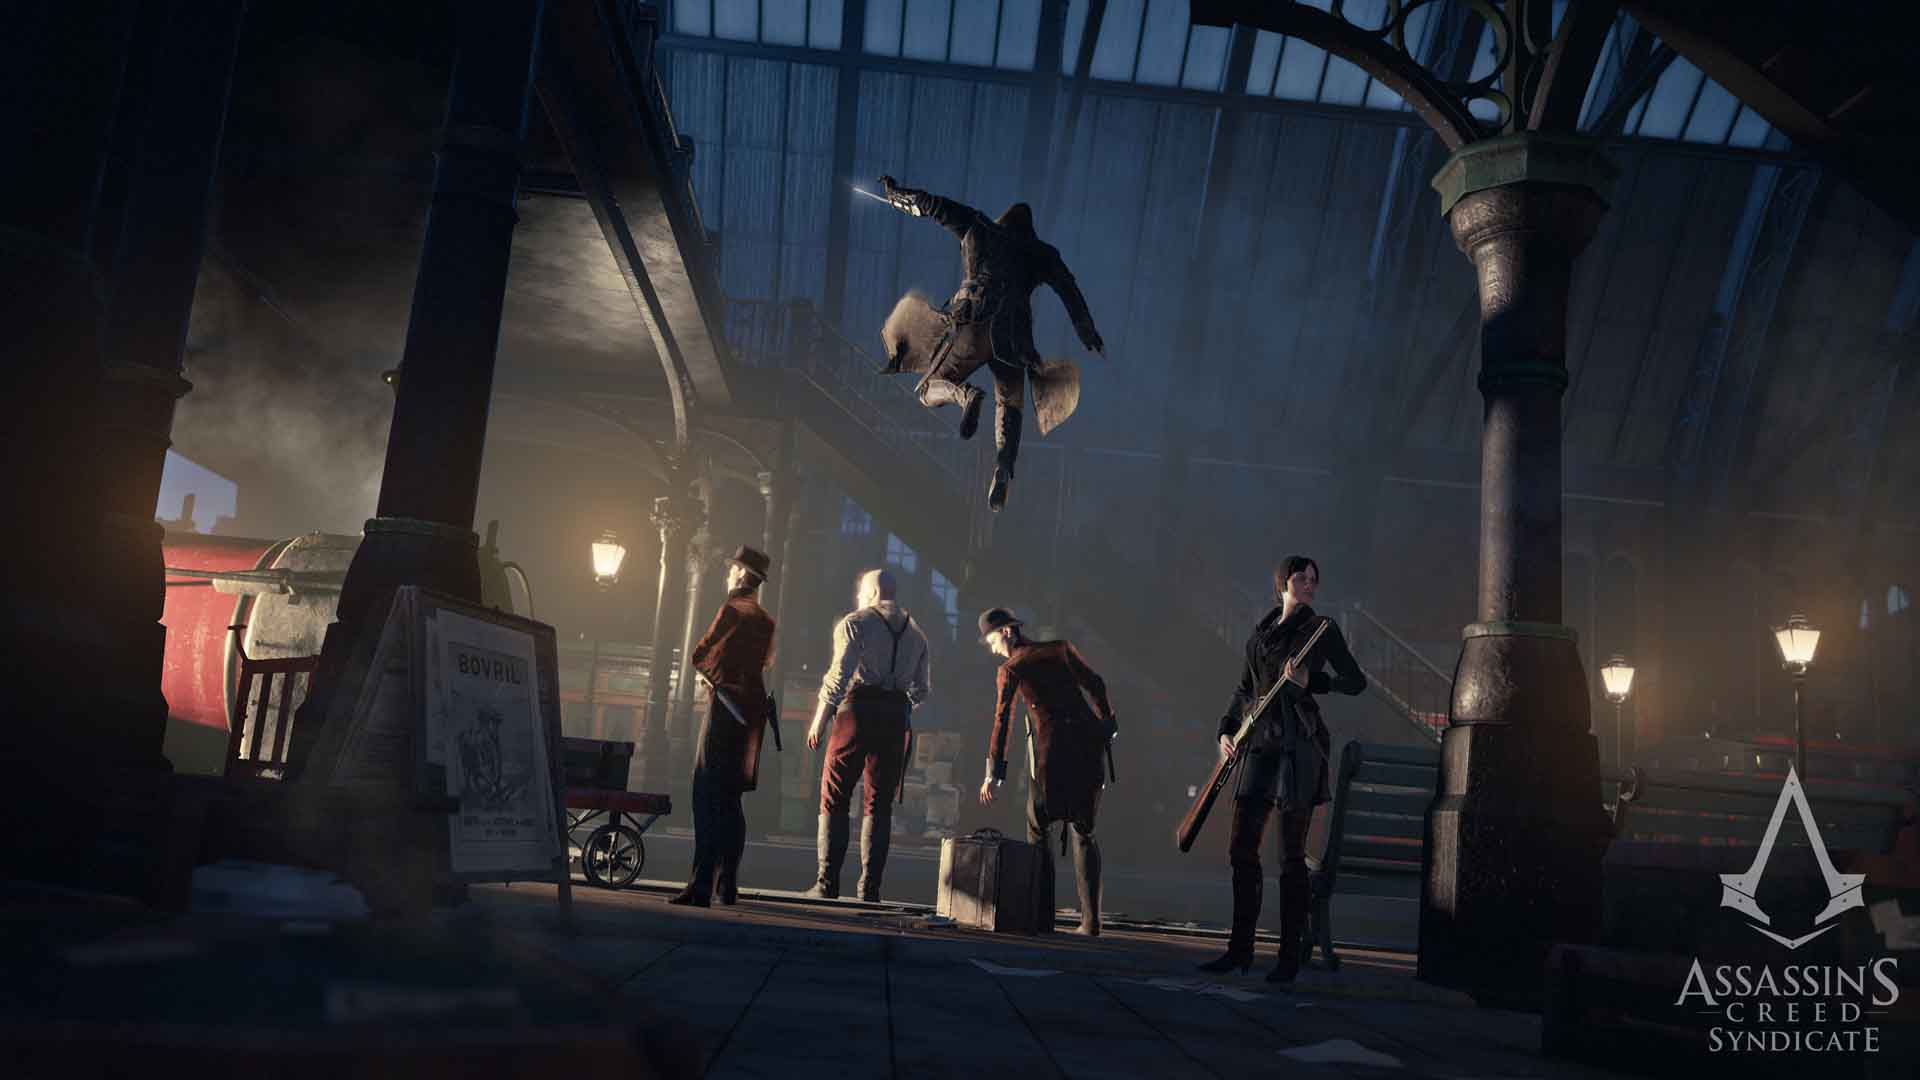 Assassins_Creed_Syndicate_Assassination_1431438283.jpg